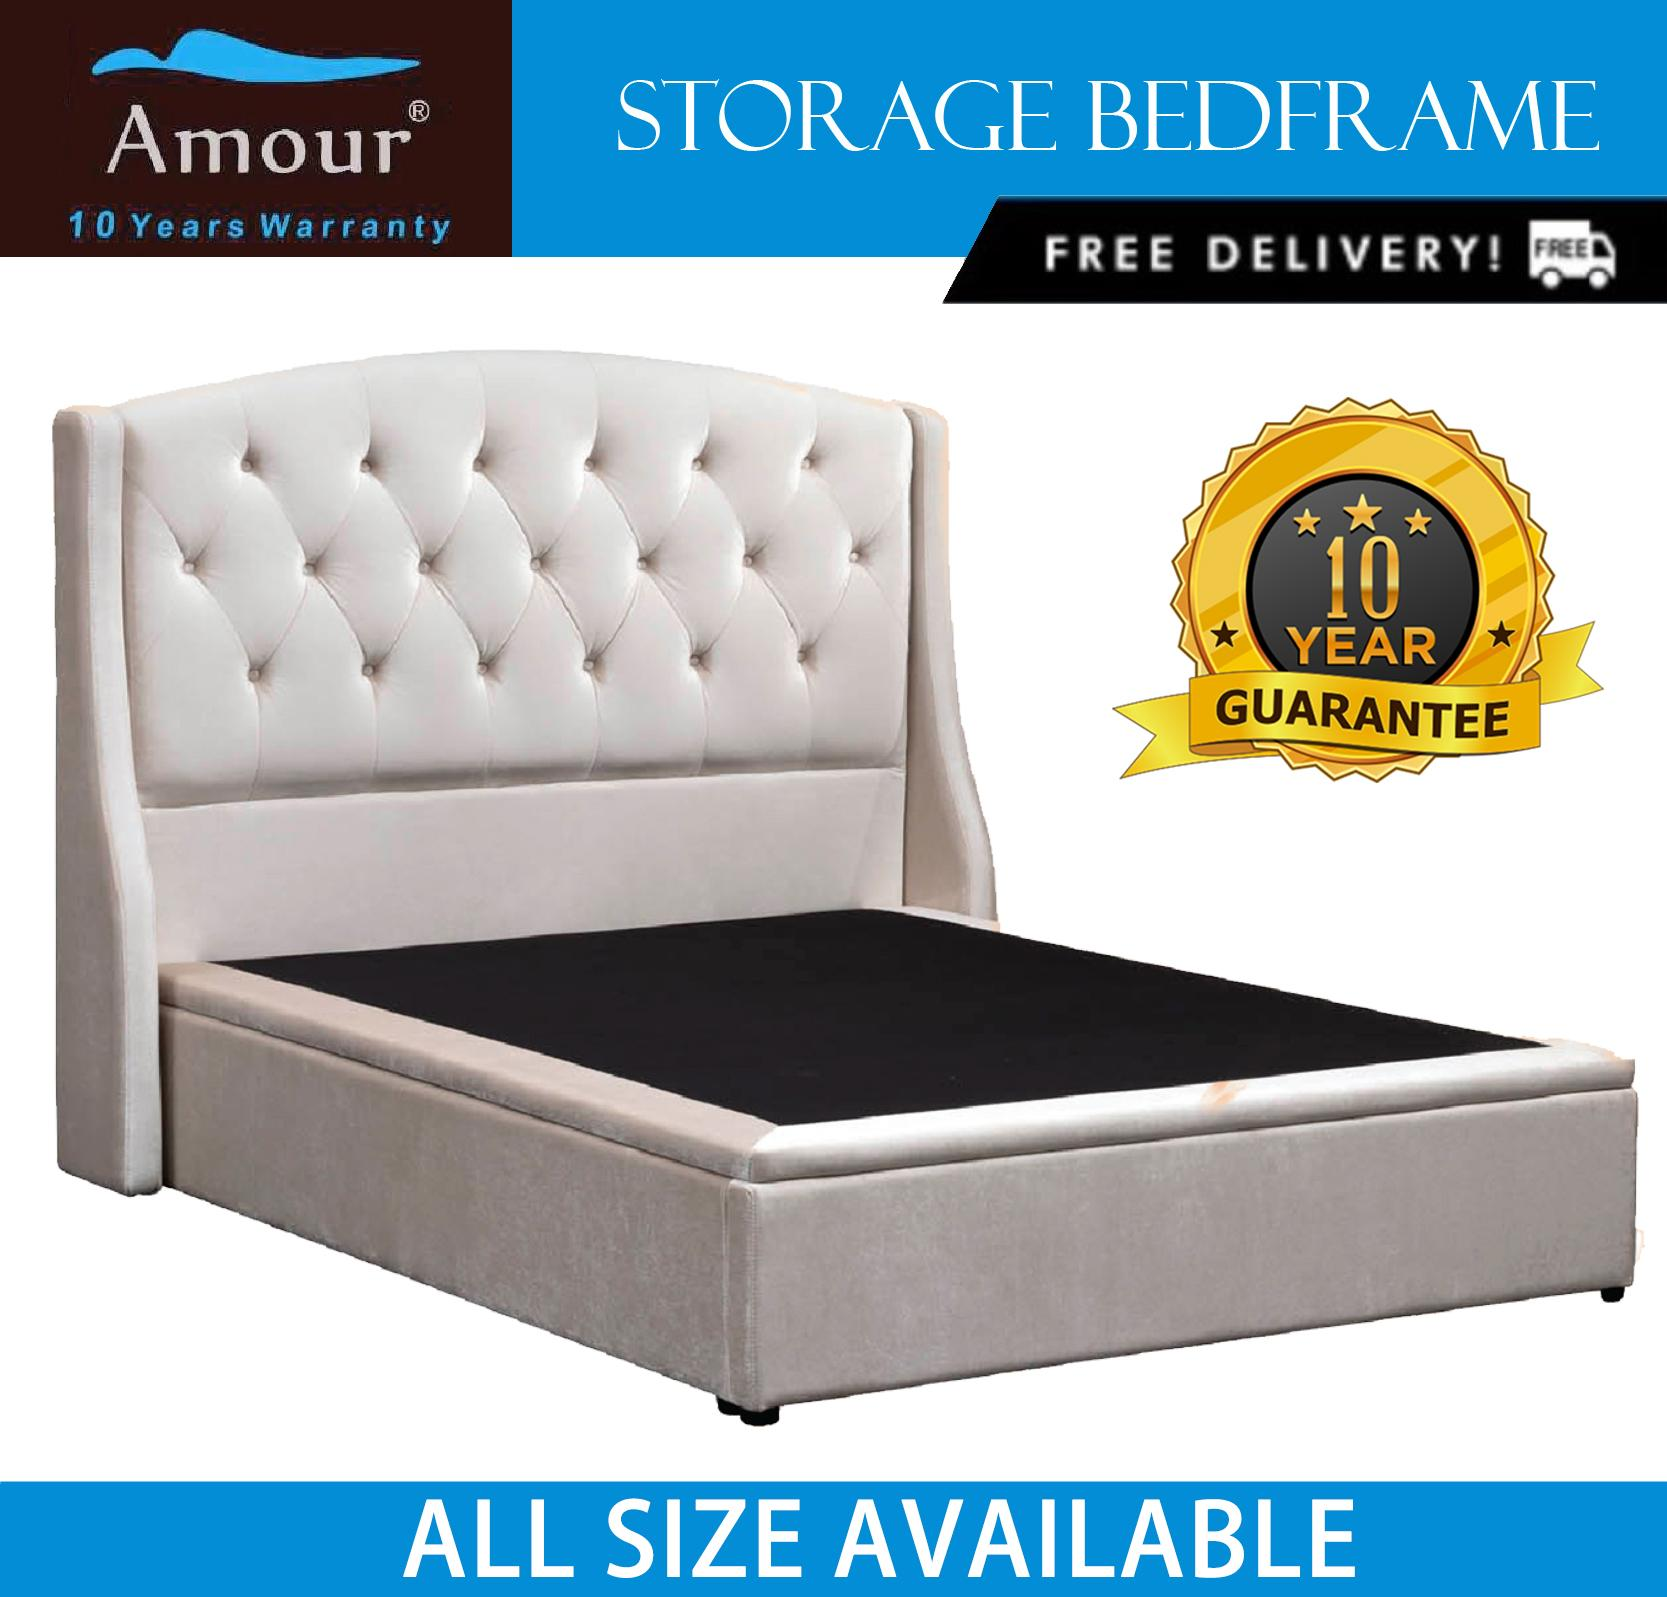 AMOUR BRAND VELVET CLOTH STORAGE BED/ ALL SIZE AVAILABLE / FREE DELIVERY / 10 YEAR WARRANTY